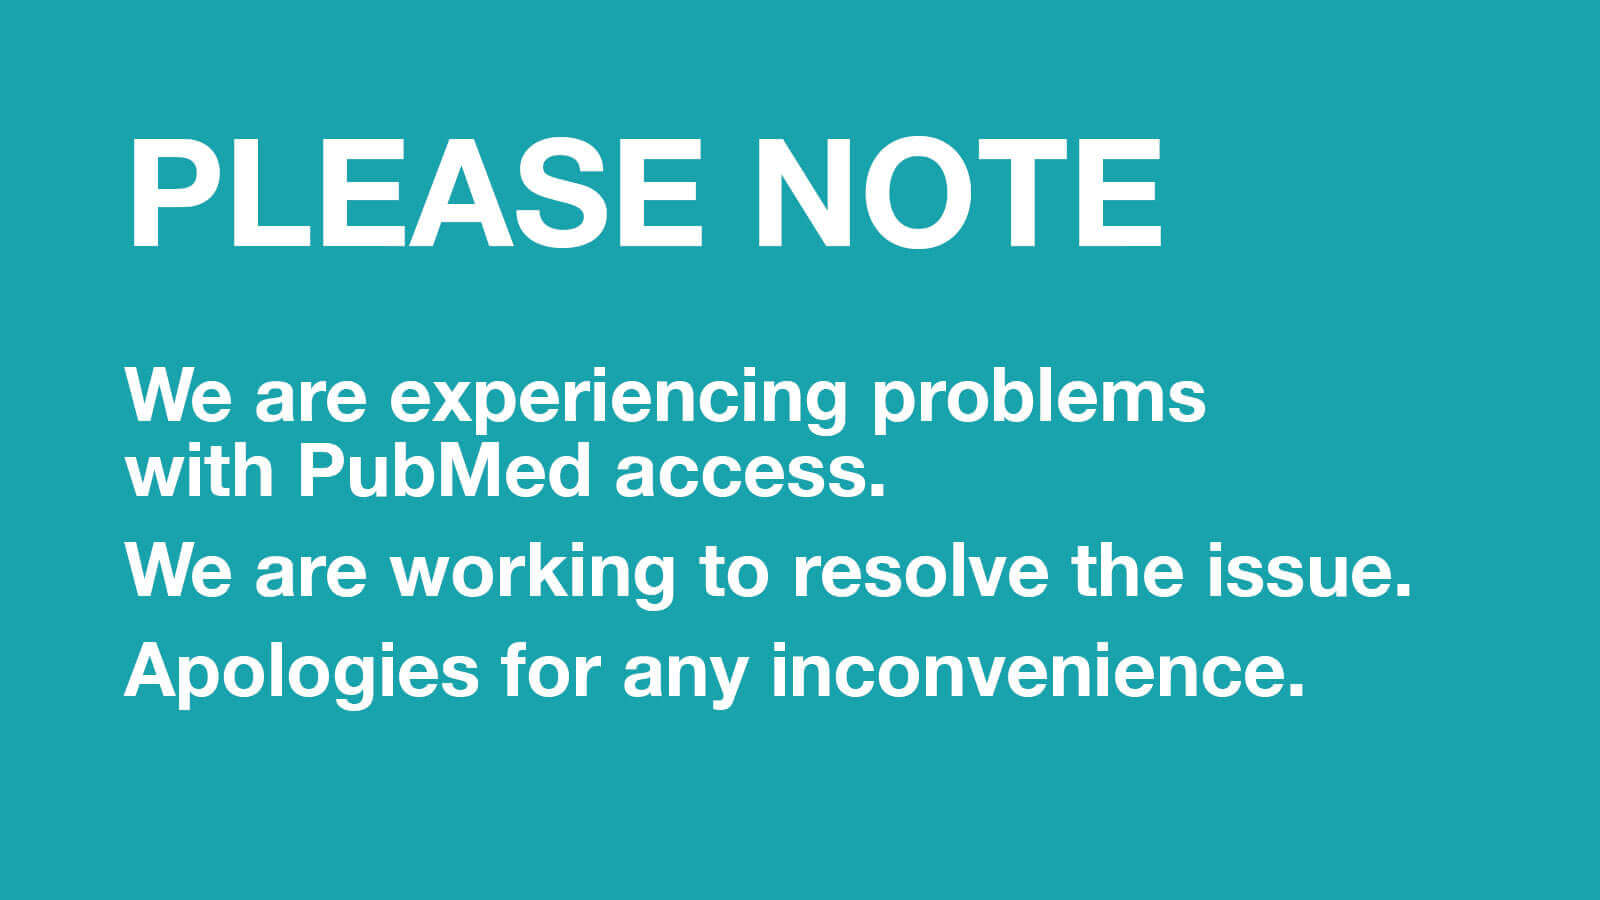 PLEASE NOTE: Access Issues with PubMed | UCSF Library